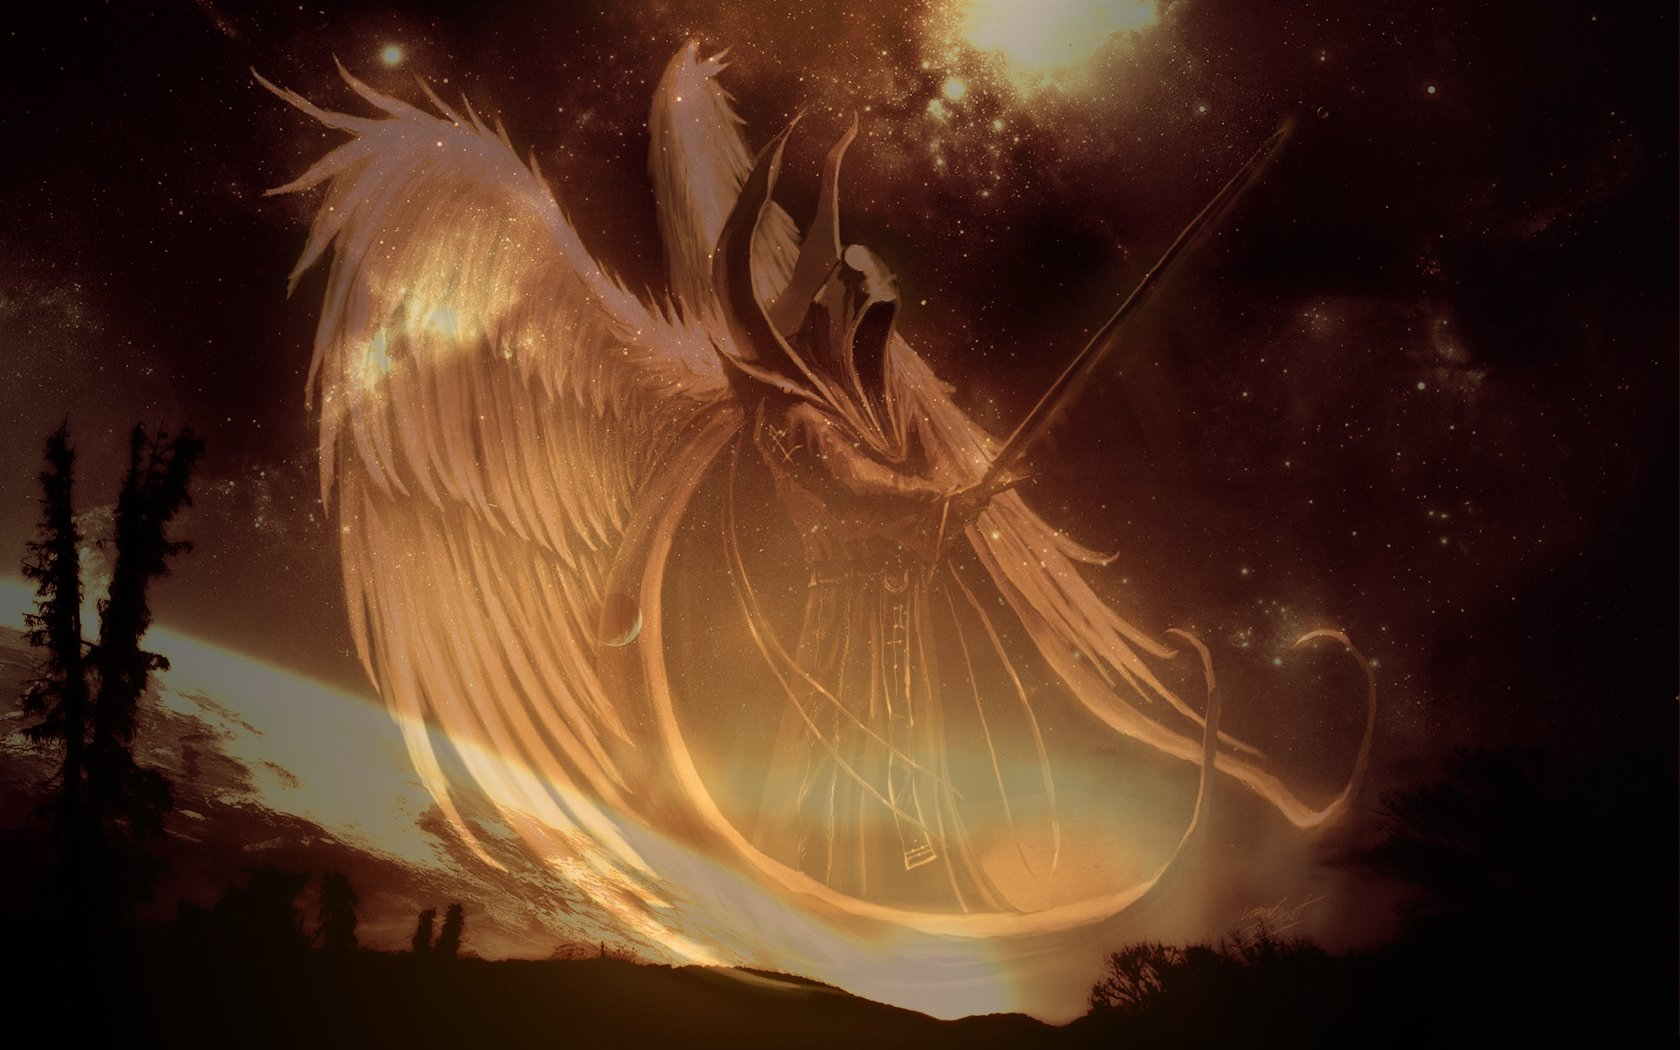 How To Use Gif As Wallpaper Iphone X Angel Warrior Wallpaper And Background Image 1680x1050